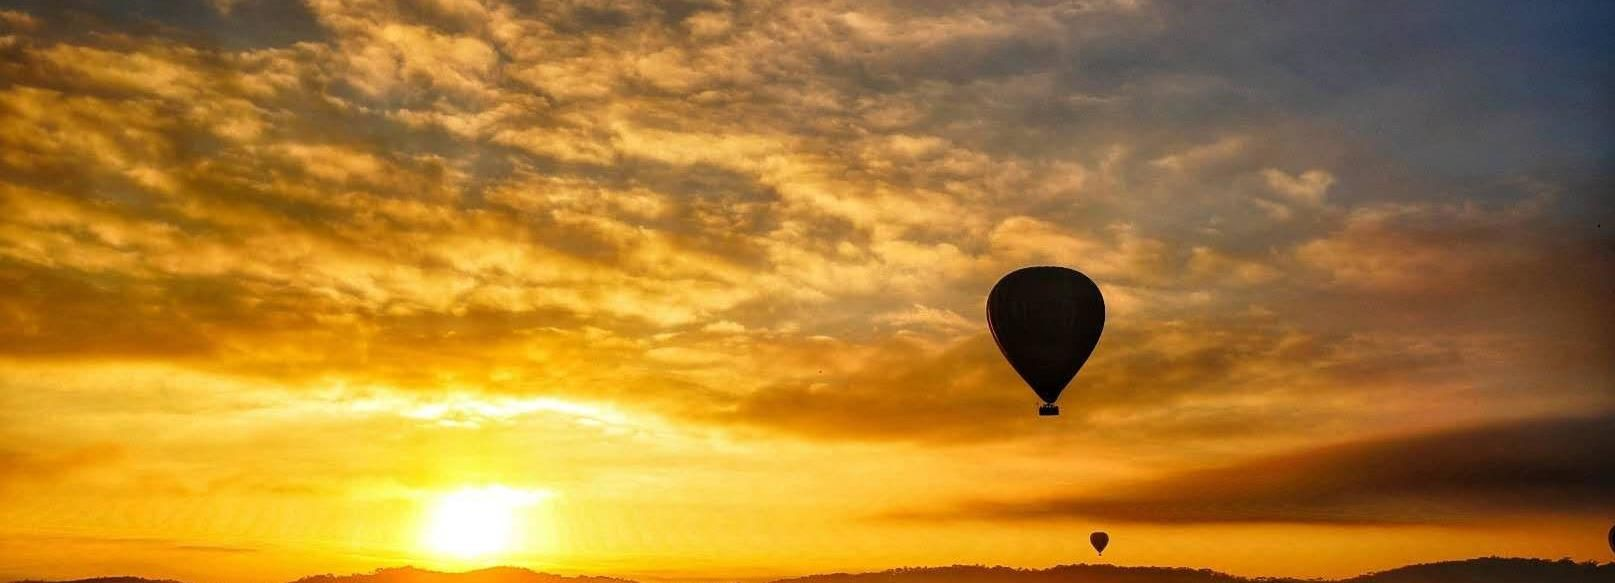 Geelong: Balloon Flight at Sunrise